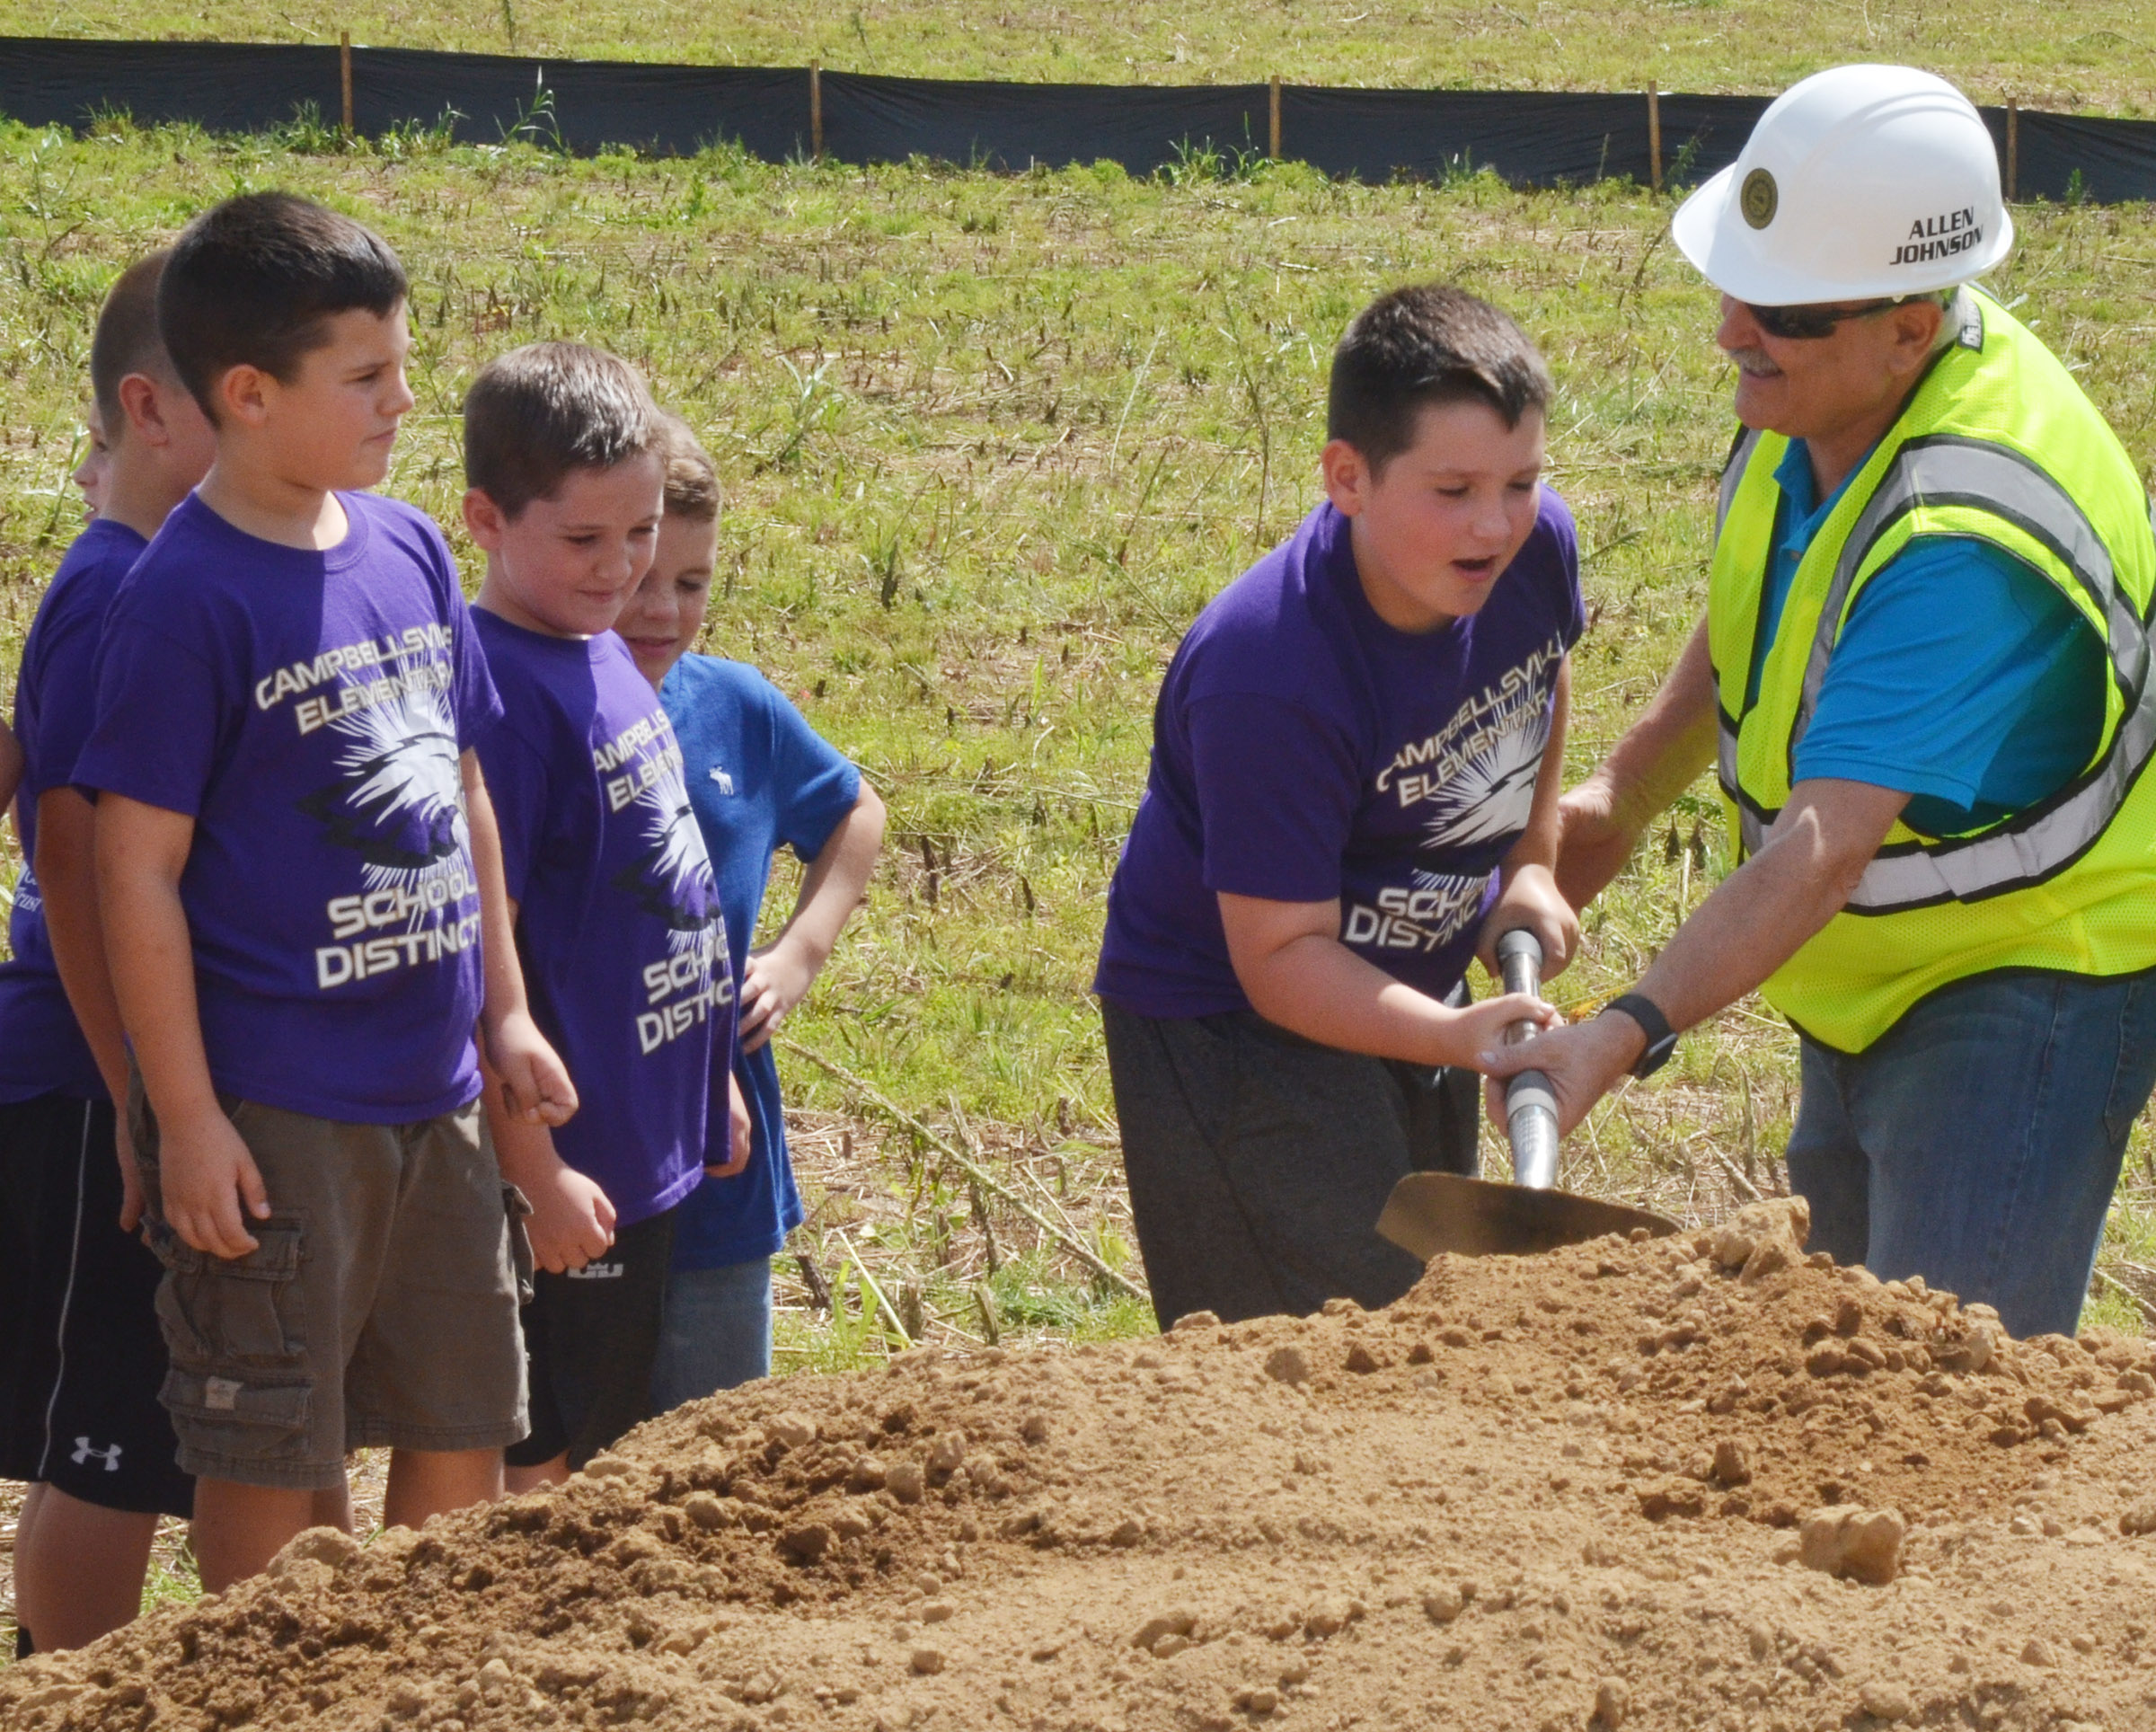 CEs fourth-grader Ethan Garrison breaks ground for the sports complex with Campbellsville City Council member Allen Johnson.